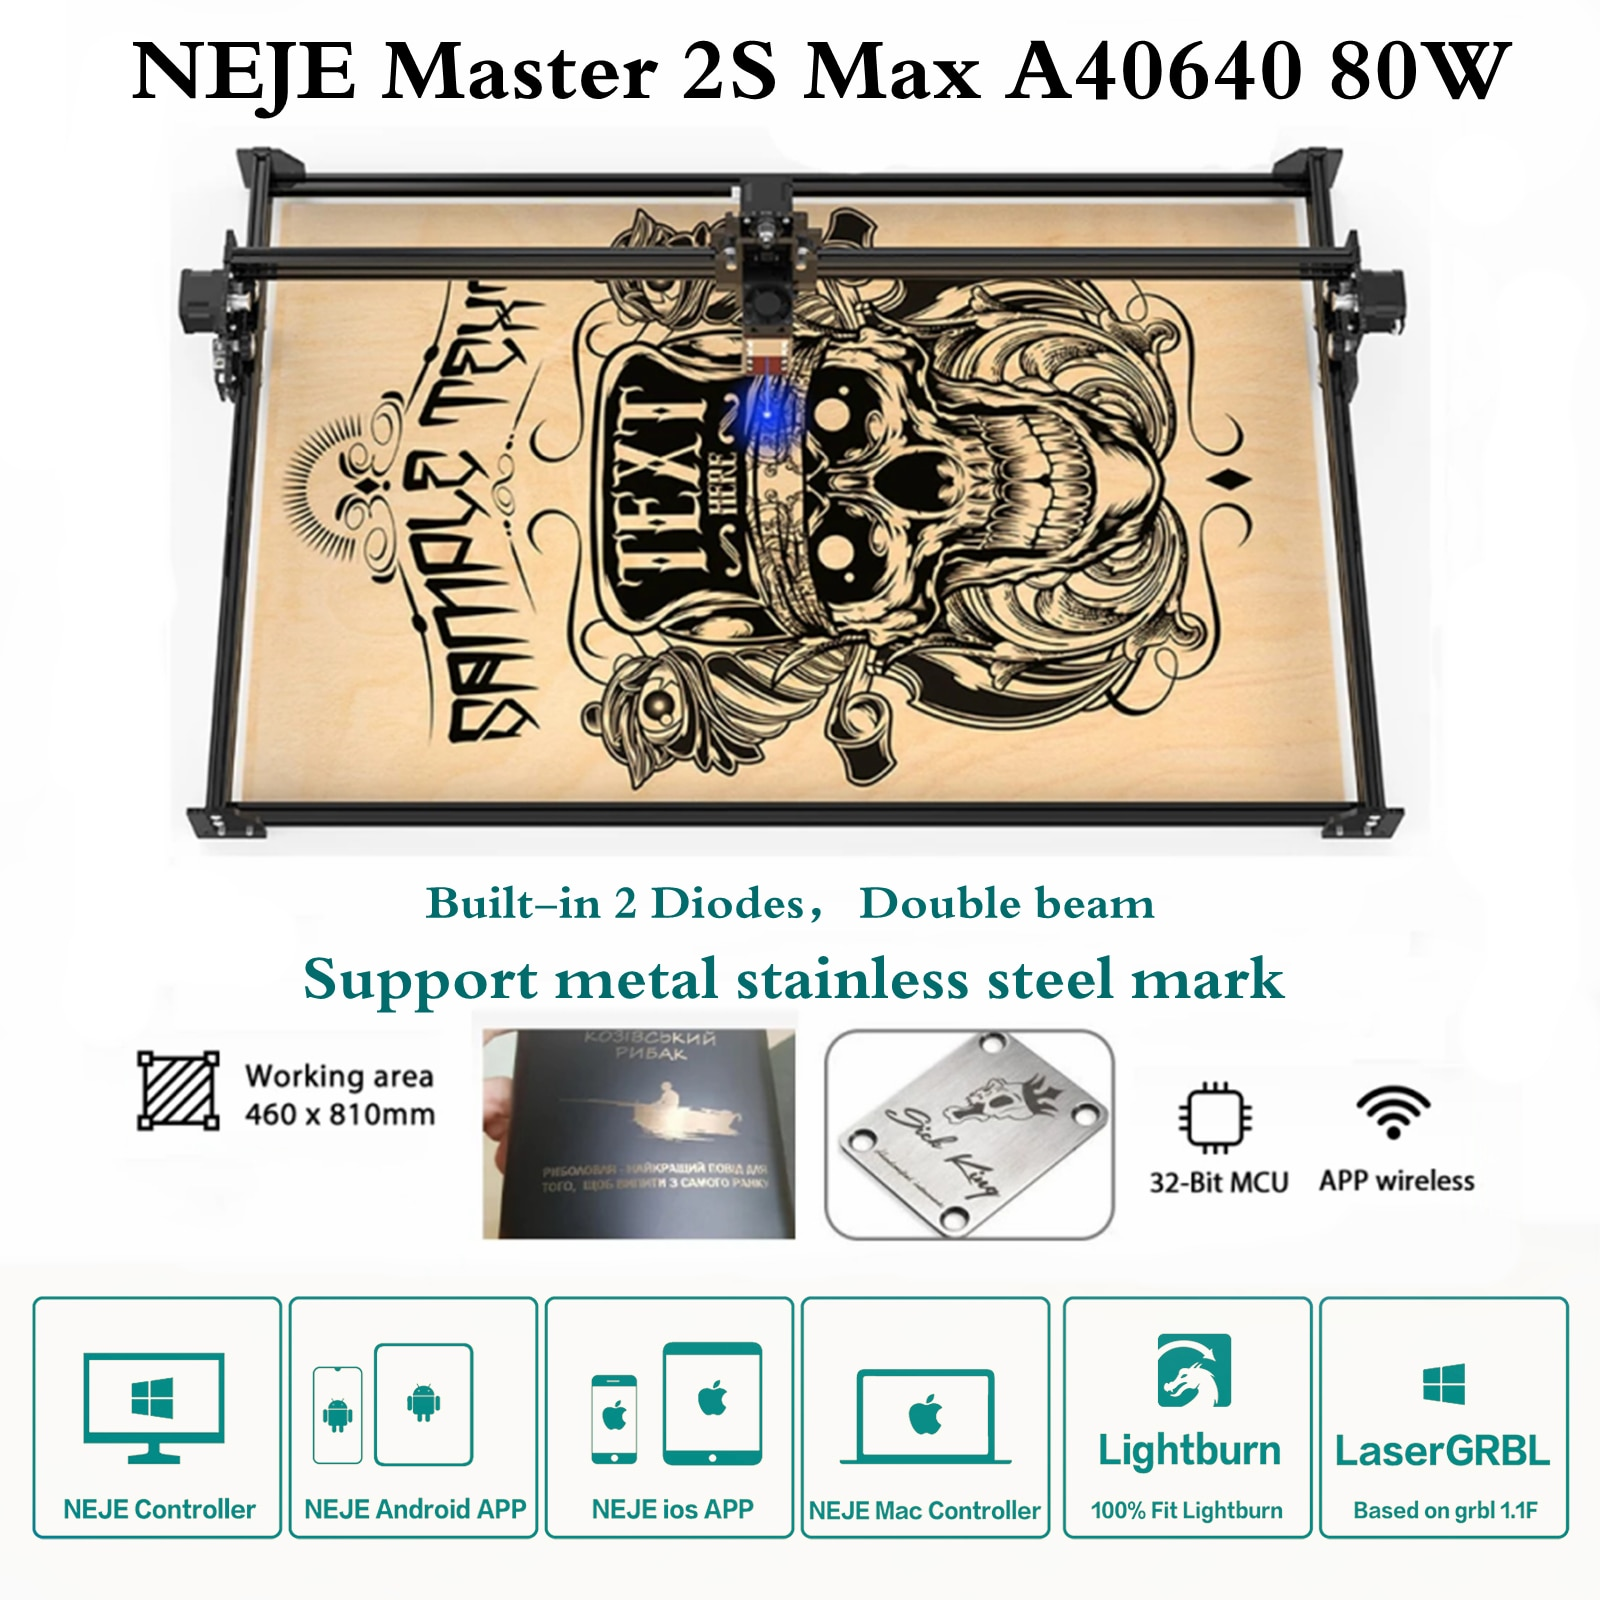 NEJE Master 2S Max 80W A40640 CNC Laser Engraver Cutting Engraver for Metal Stainless steel Mark with App Control Lightburn